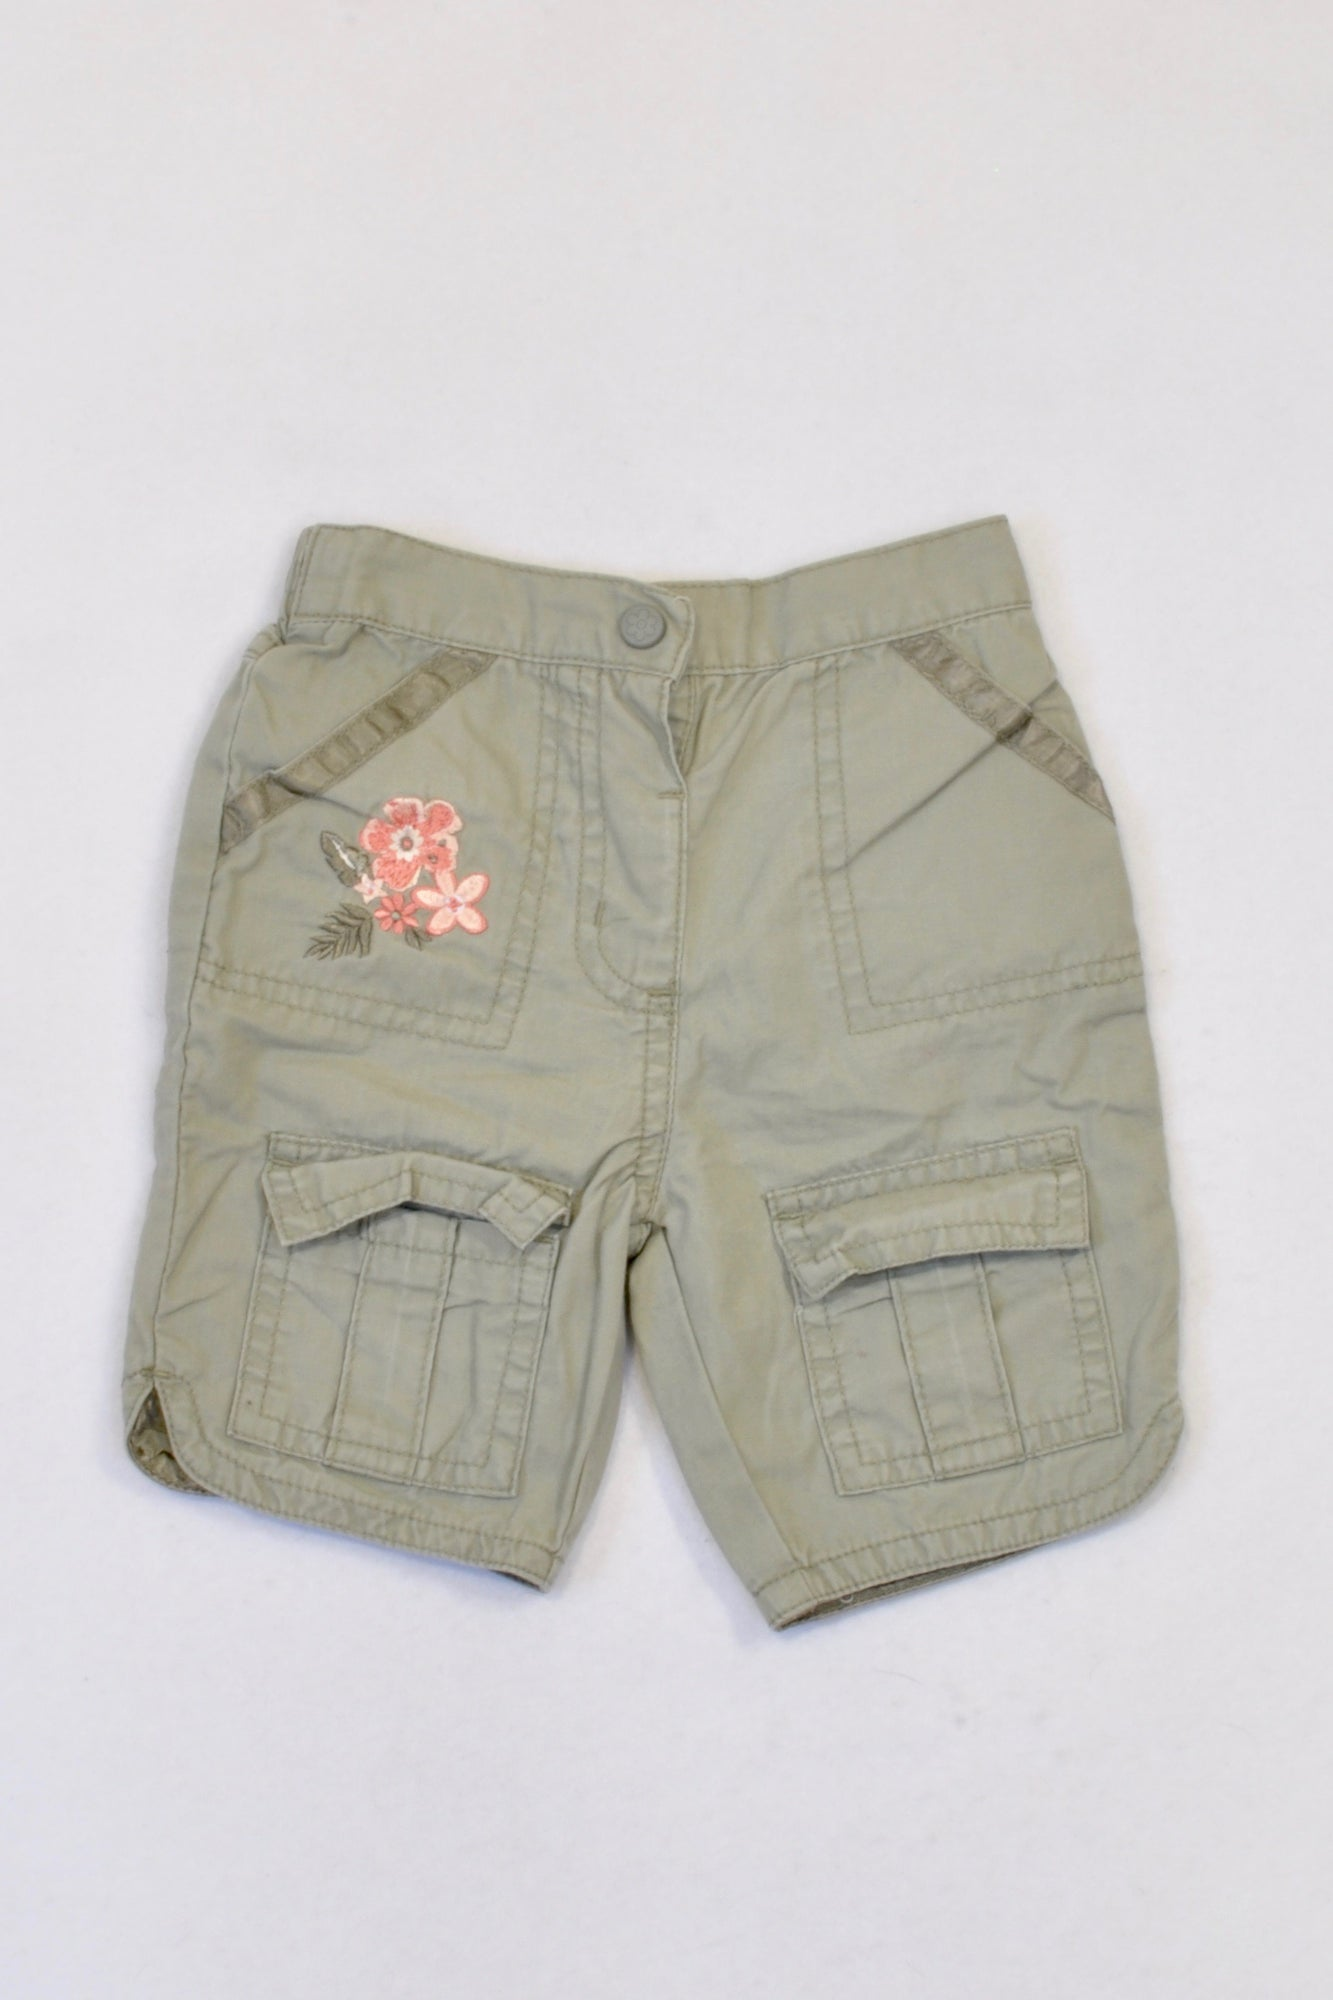 Adams Olive Embroidered Flower Shorts Girls 3-6 months